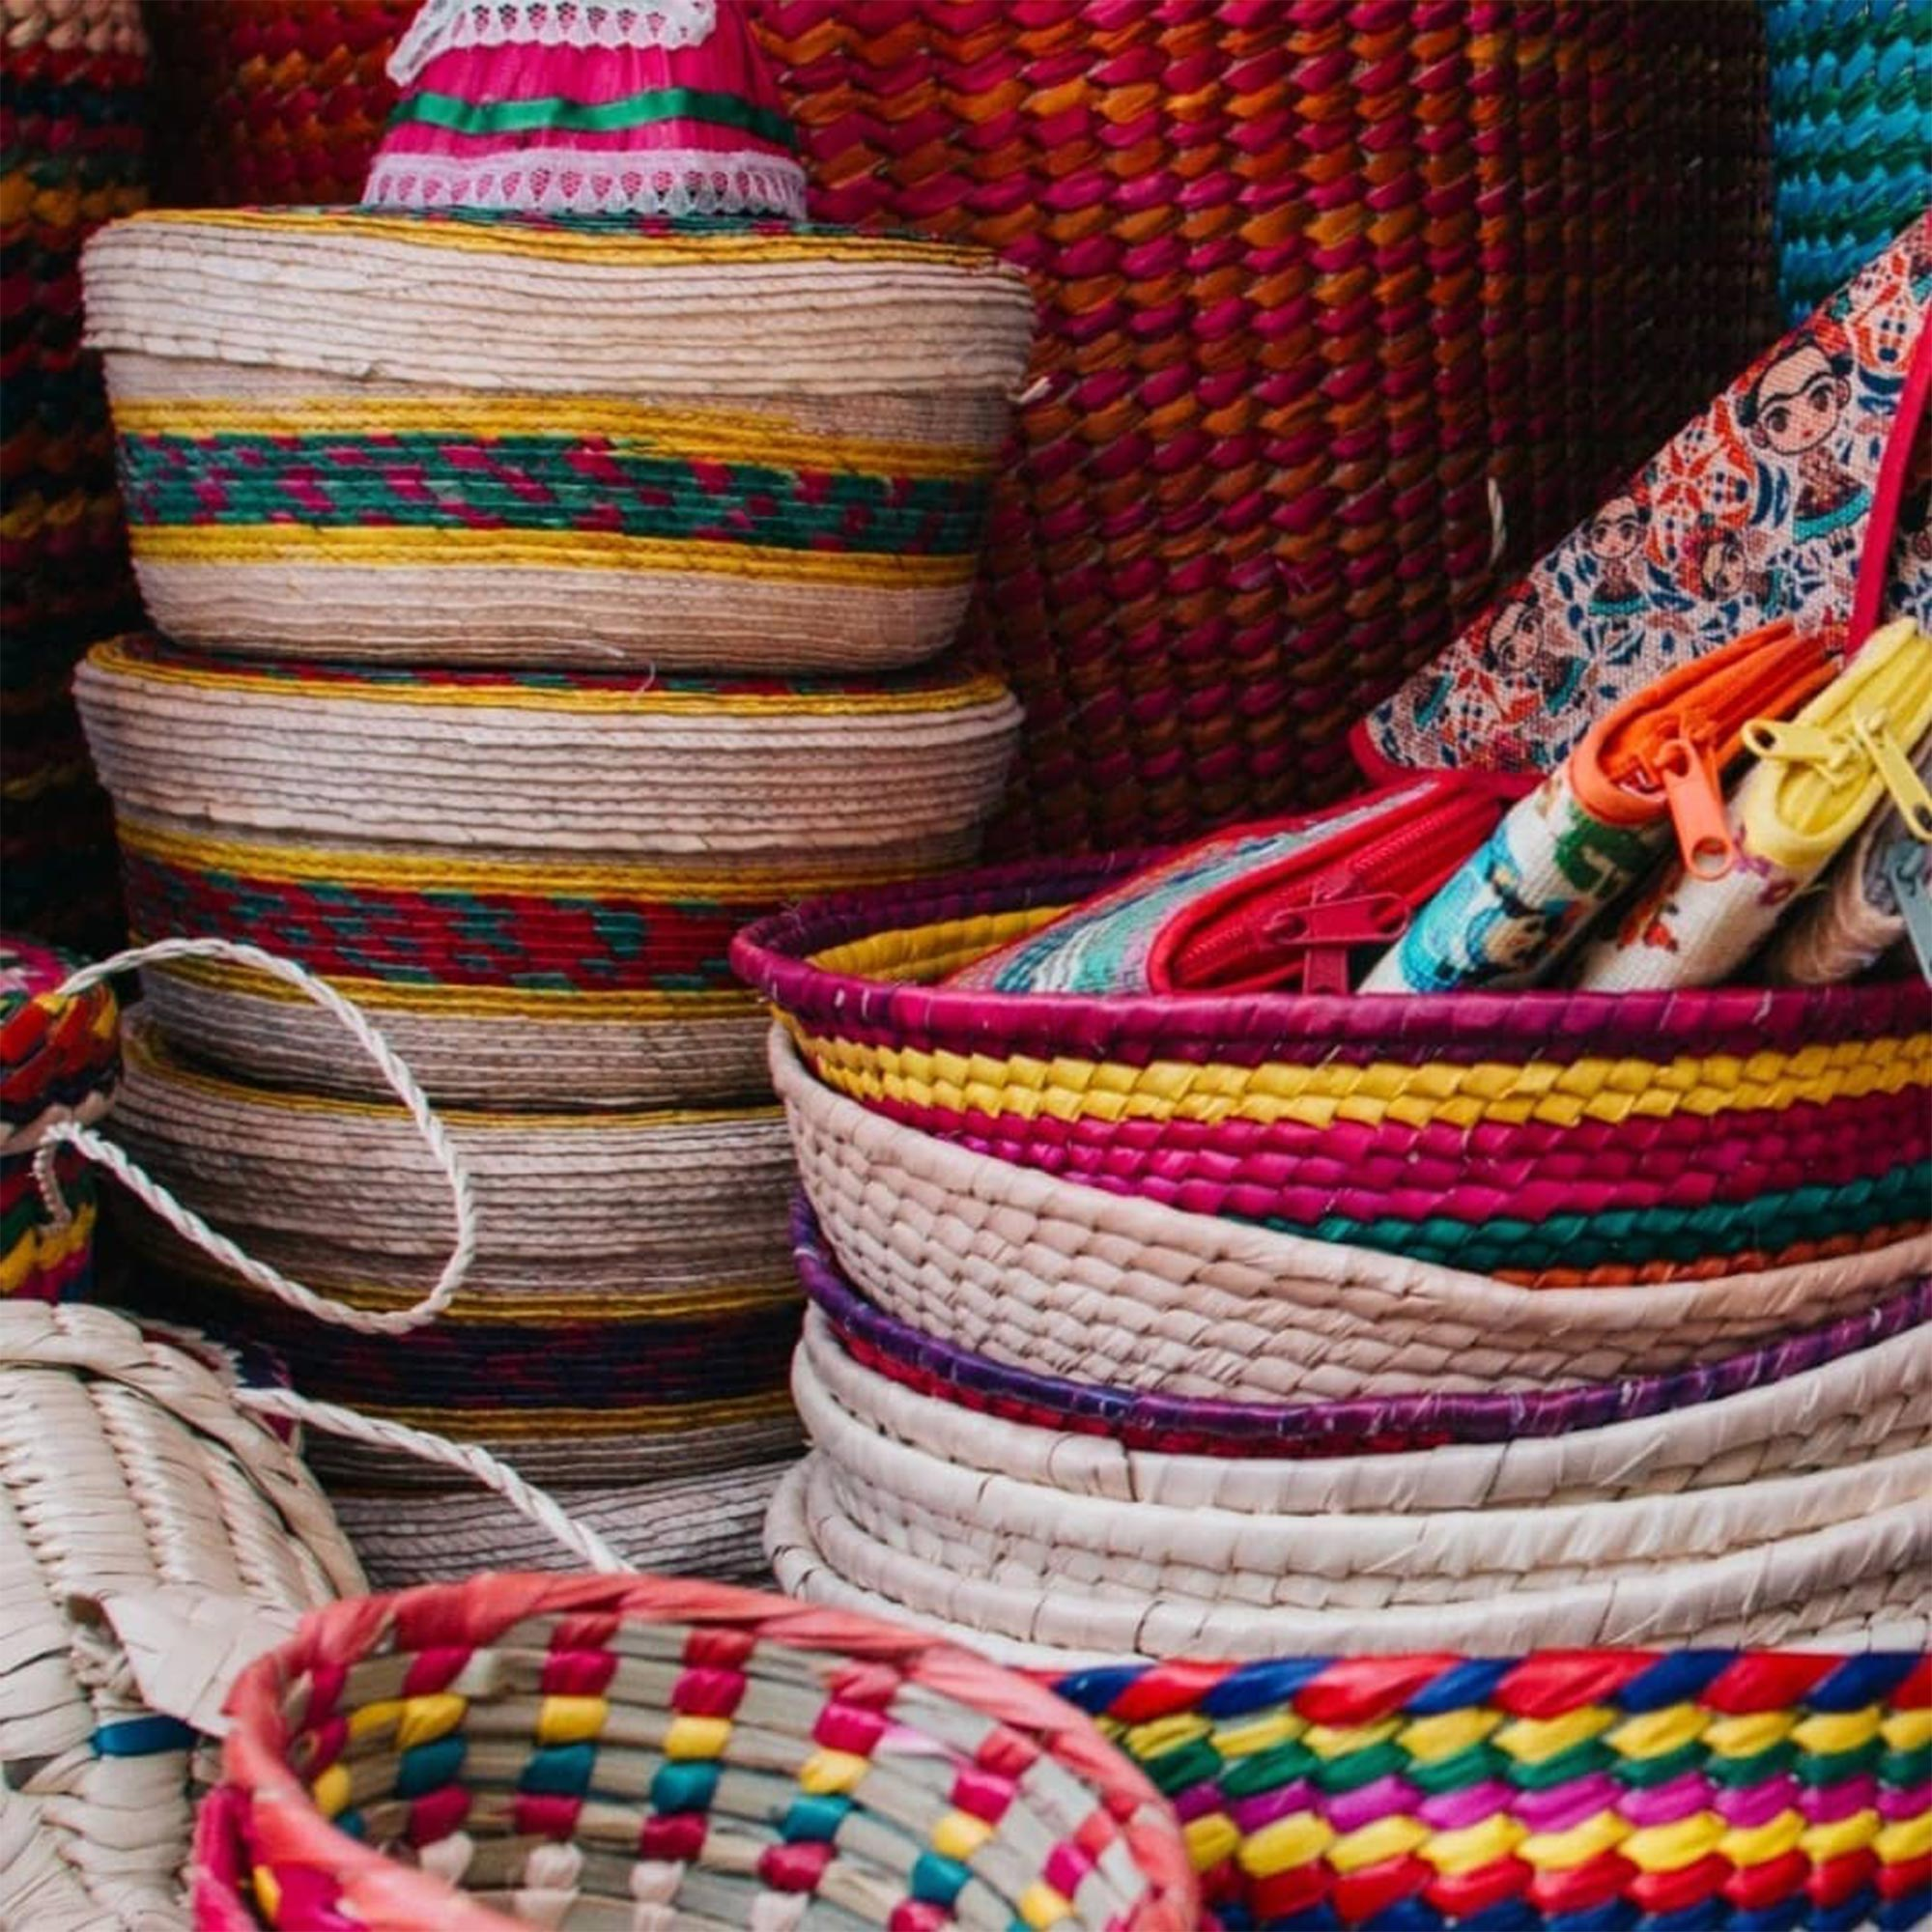 Bags and baskets made by Antonio a street vender in Condesa in Mexico City